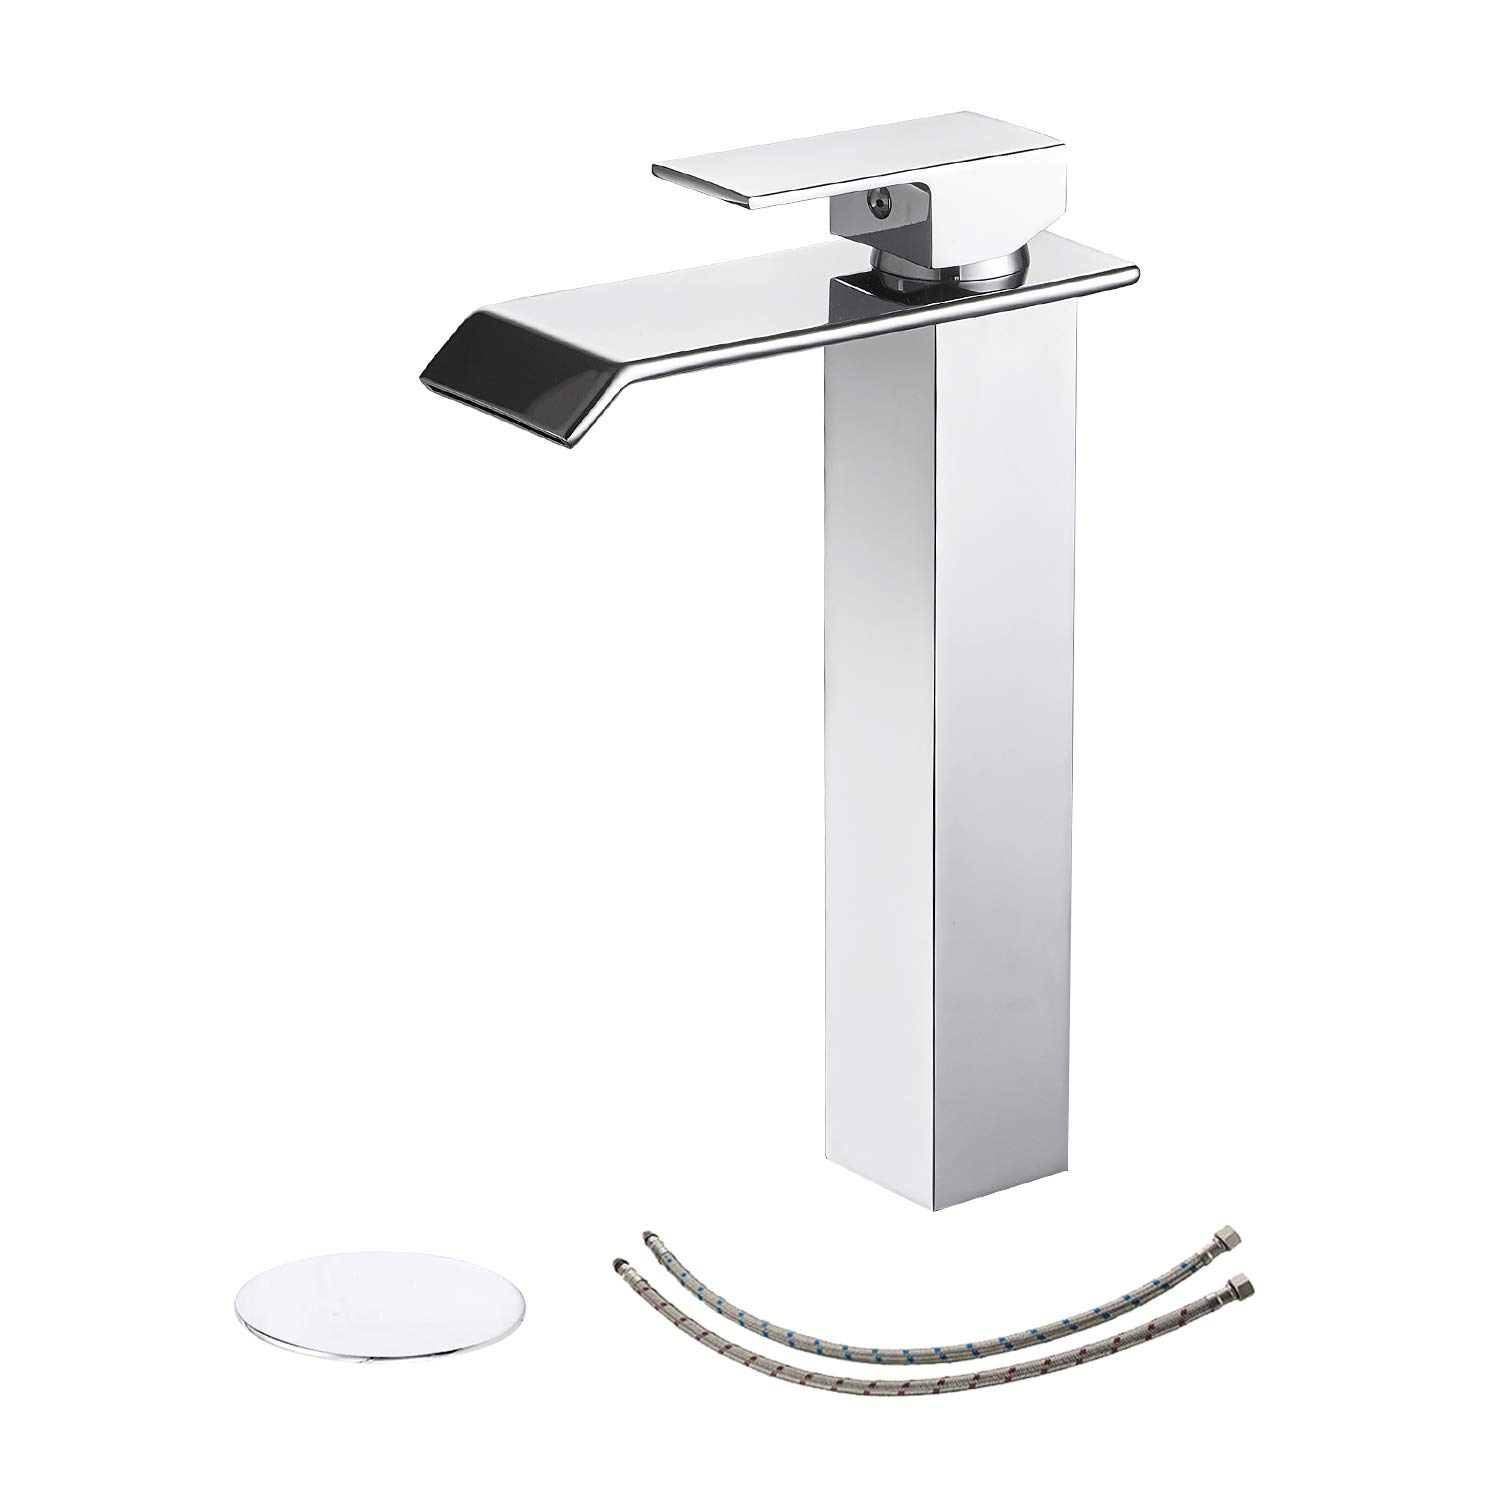 BWE Bathroom Faucet with Drain Assembly and Supply Hose Lead-free Lavatory Waterfall Vessel Sink Faucet Single Handle Mixer Tap Deck Mounted Chrome